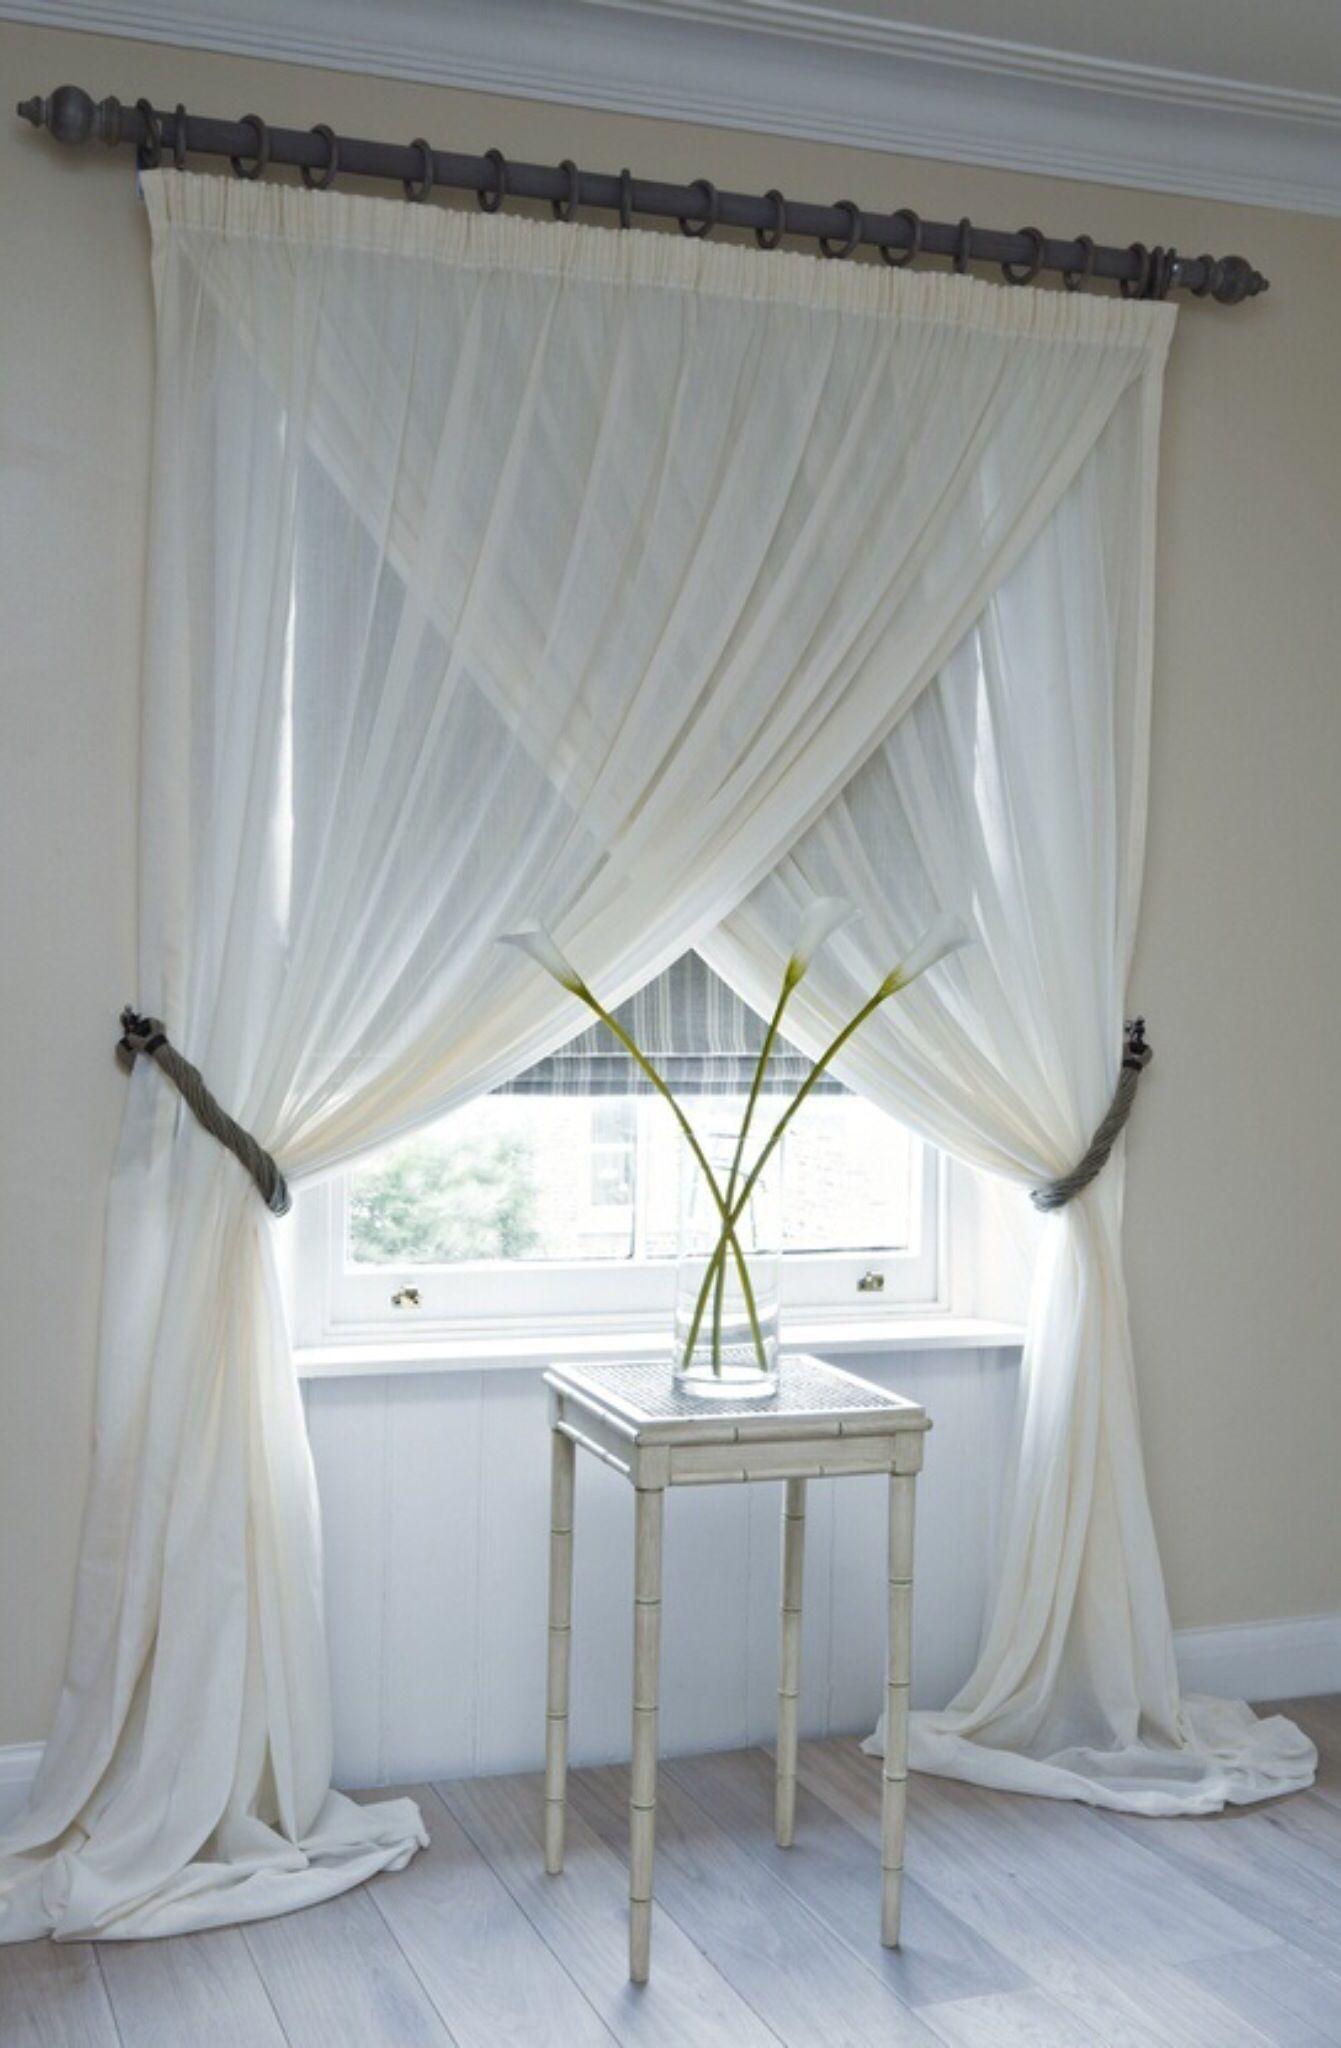 Bed against window with curtains  pin by rayna wooten on do this look  pinterest  bedrooms master